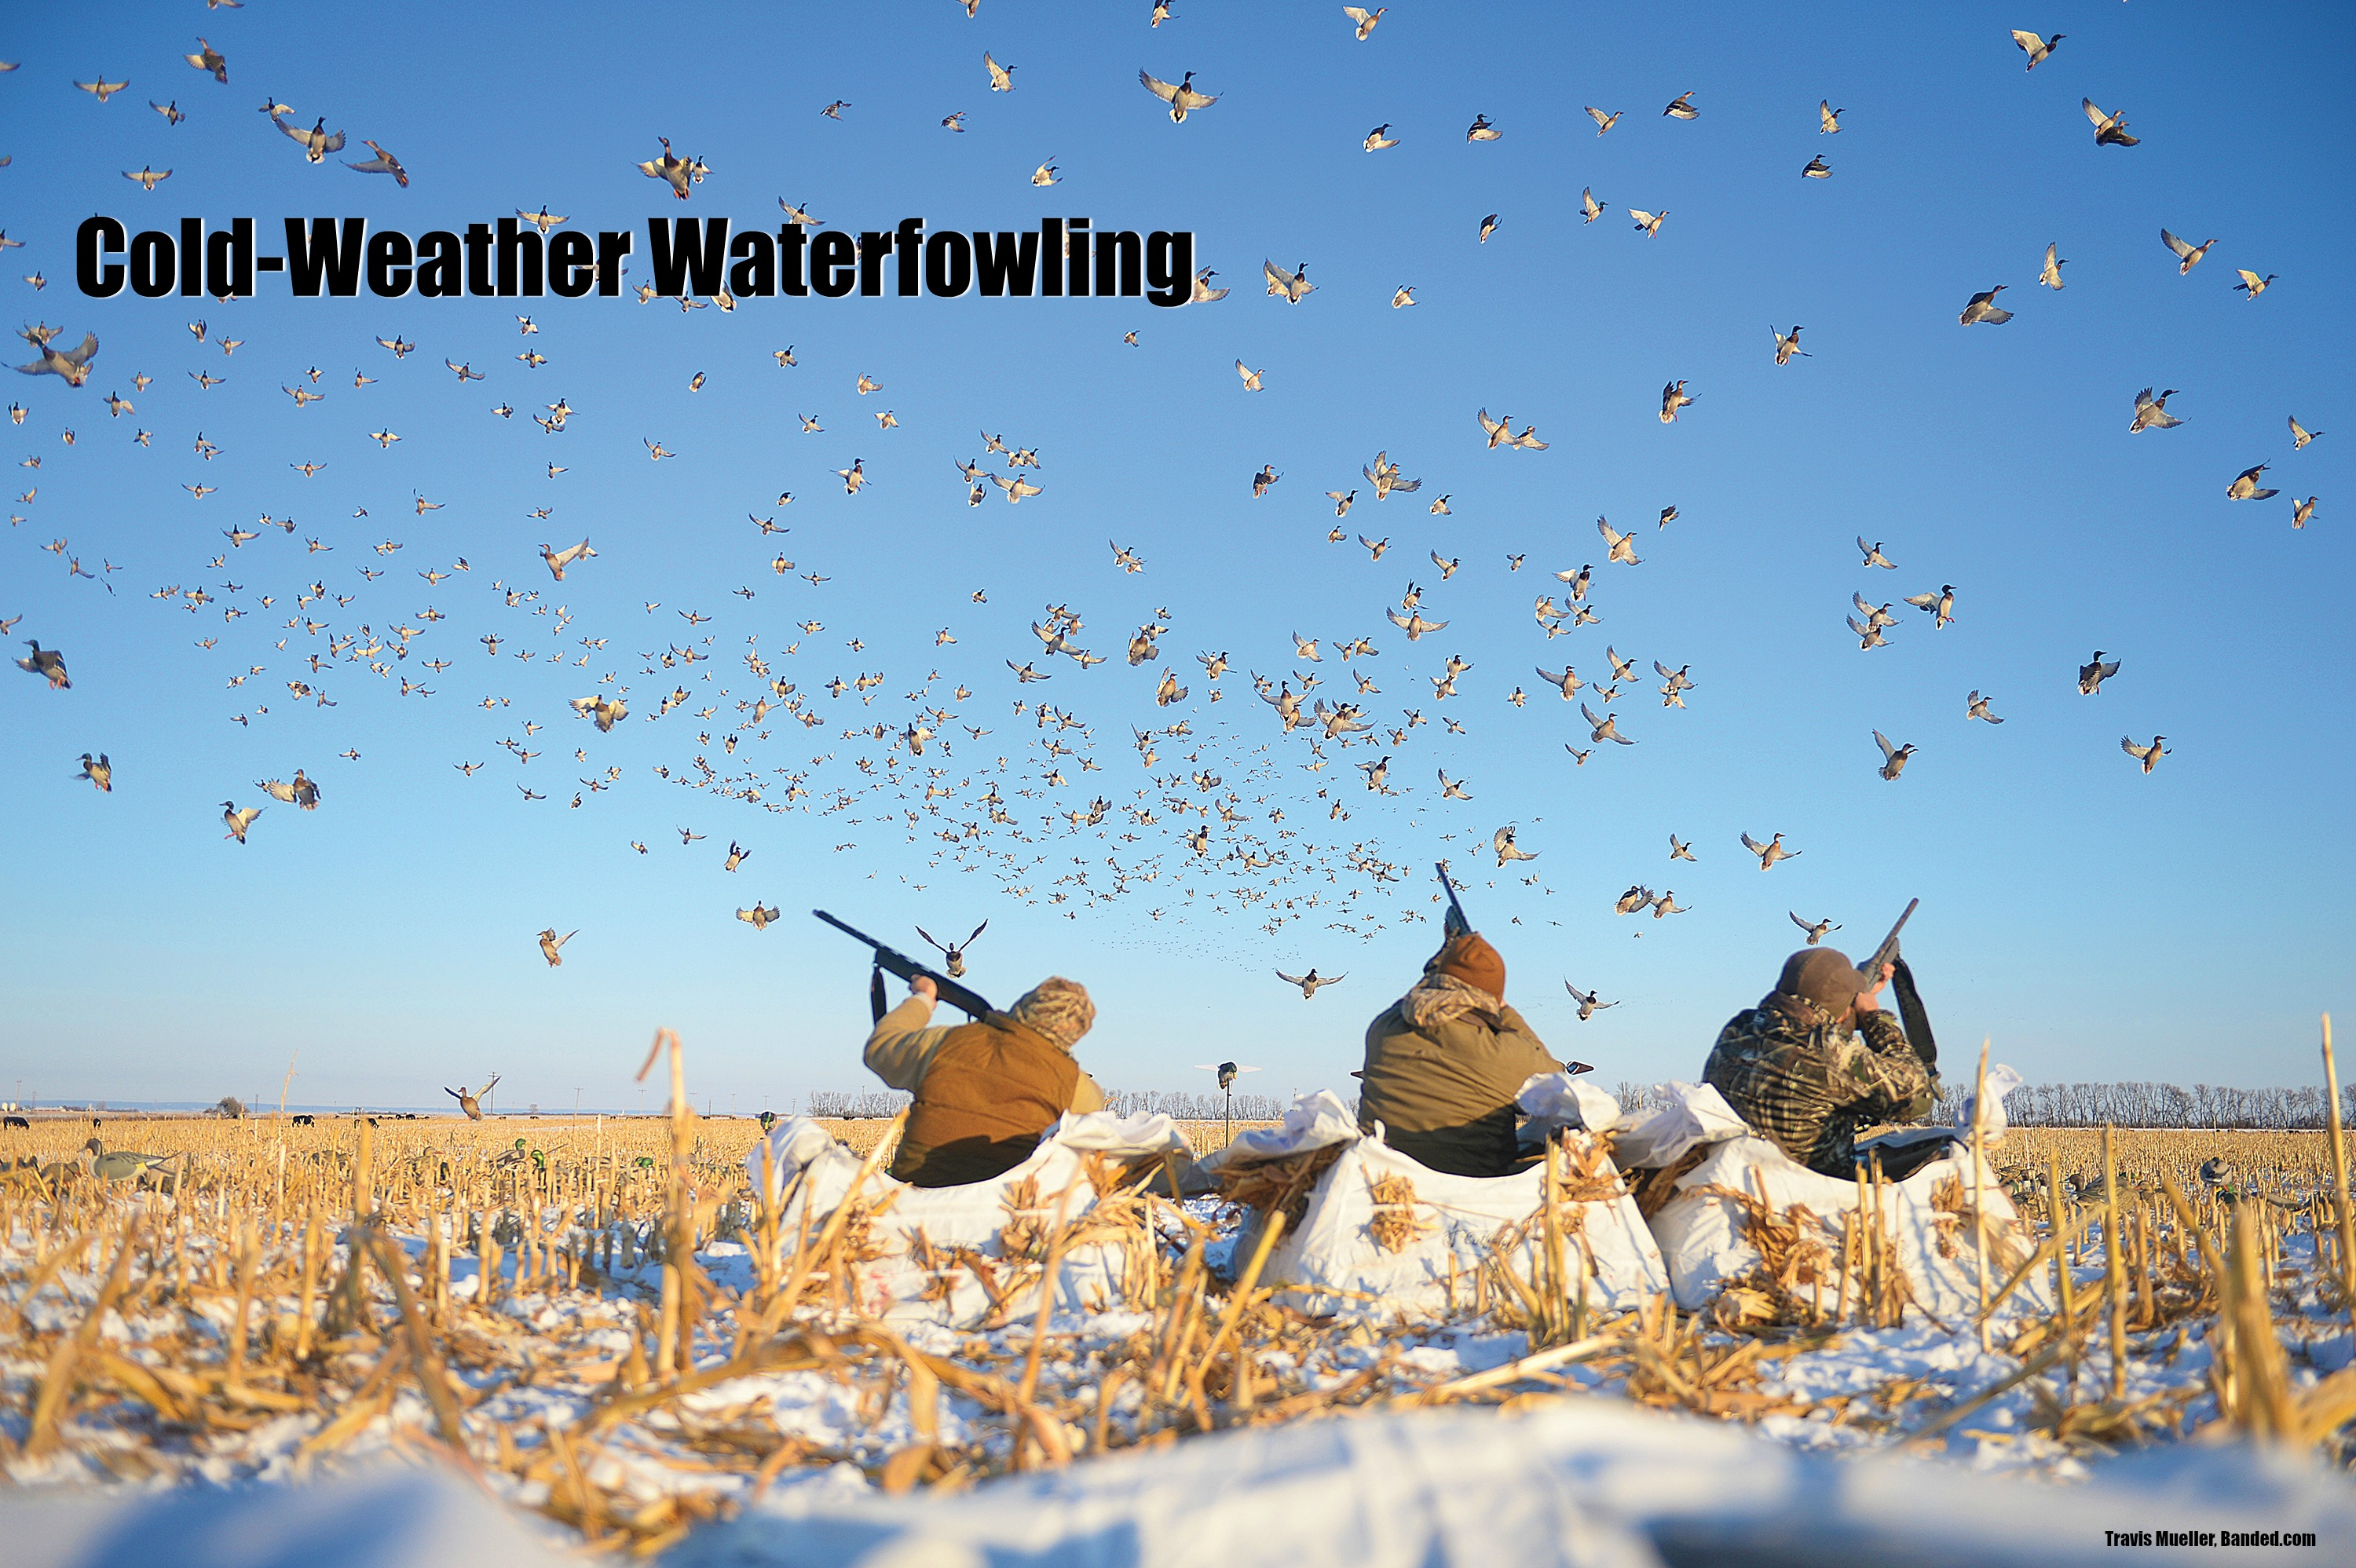 The Cold-Weather Waterfowling Issue: January 2018